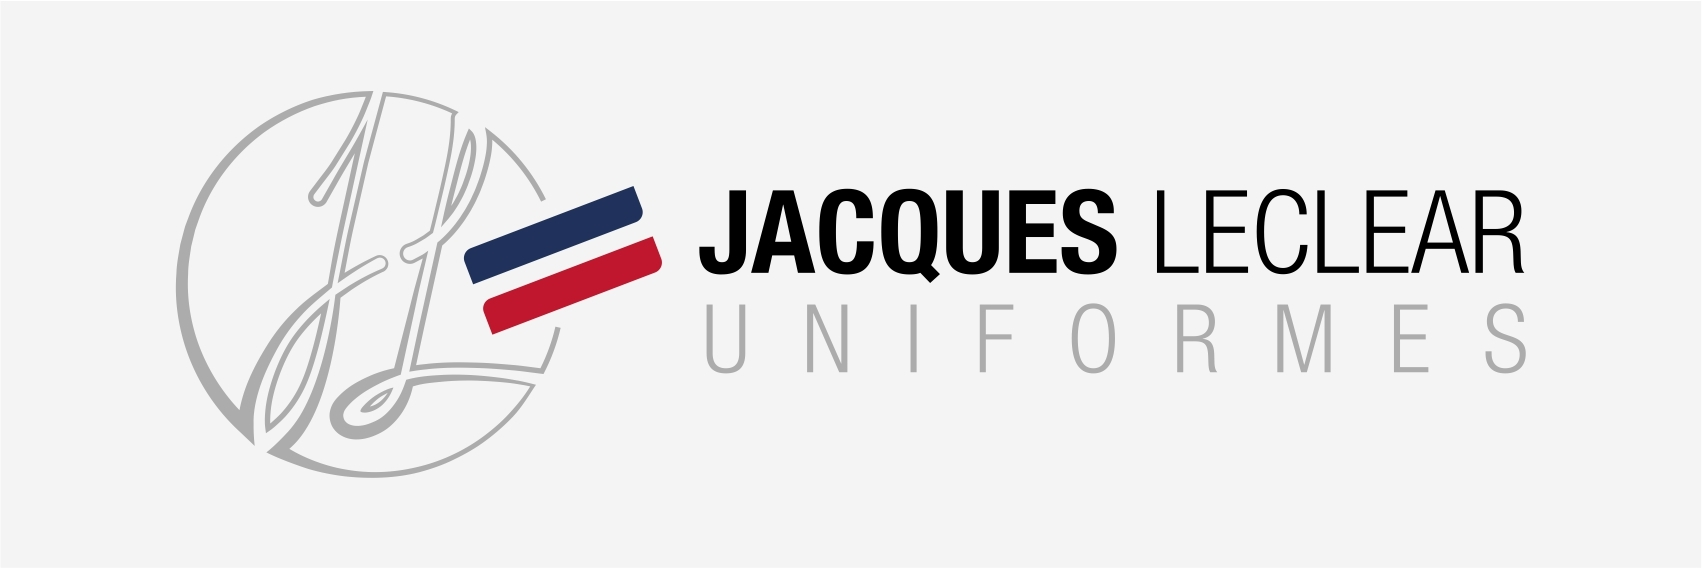 BENEFICIO JACQUES LECLEAR UNIFORMES